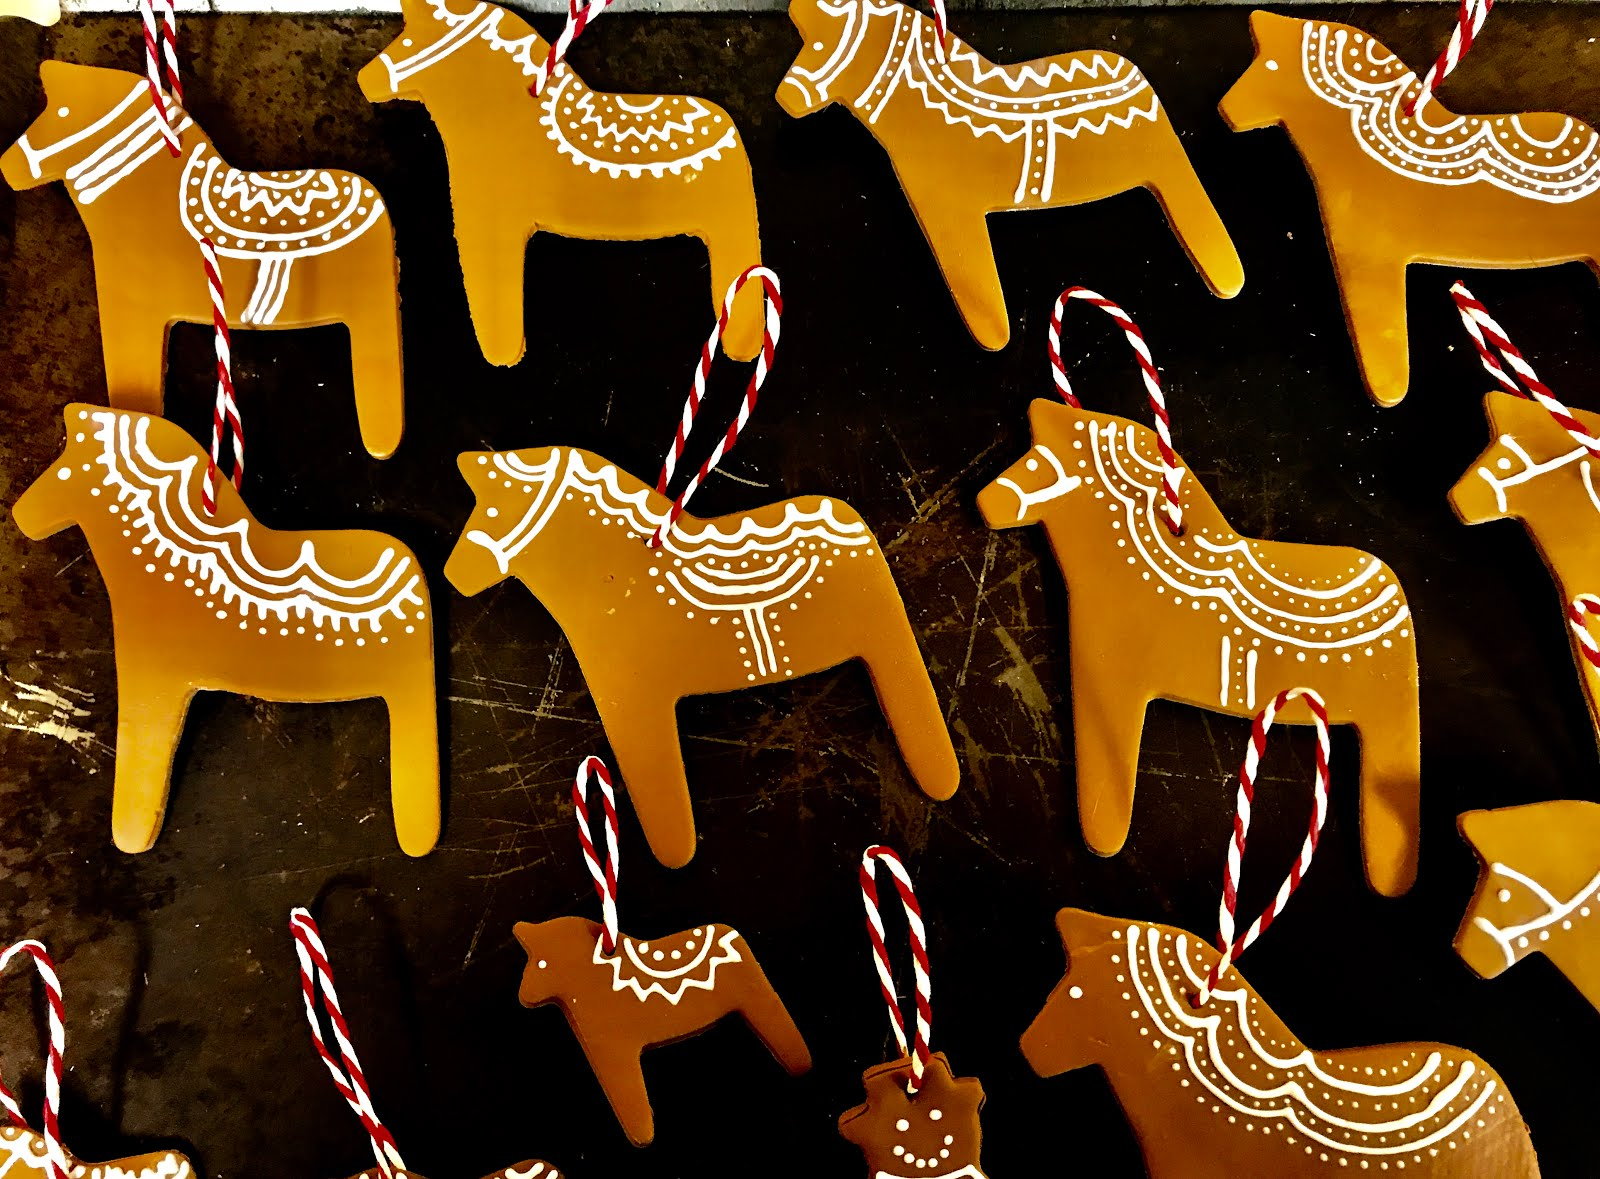 Swedish Dala horse ornaments